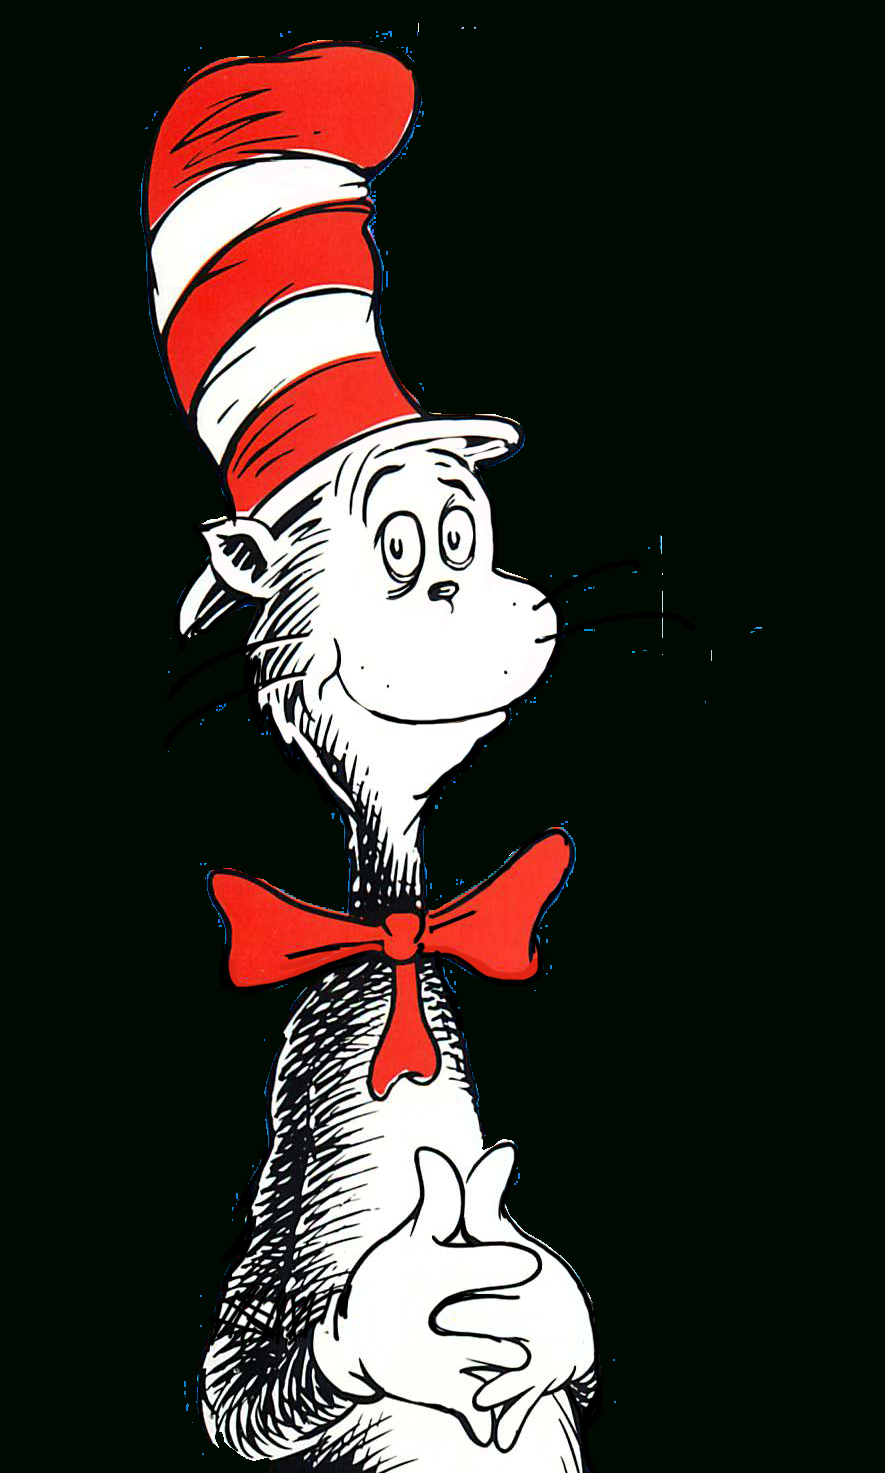 Pictures Of Dr Seuss Characters | Free Download Best Pictures Of Dr - Free Printable Dr Seuss Characters